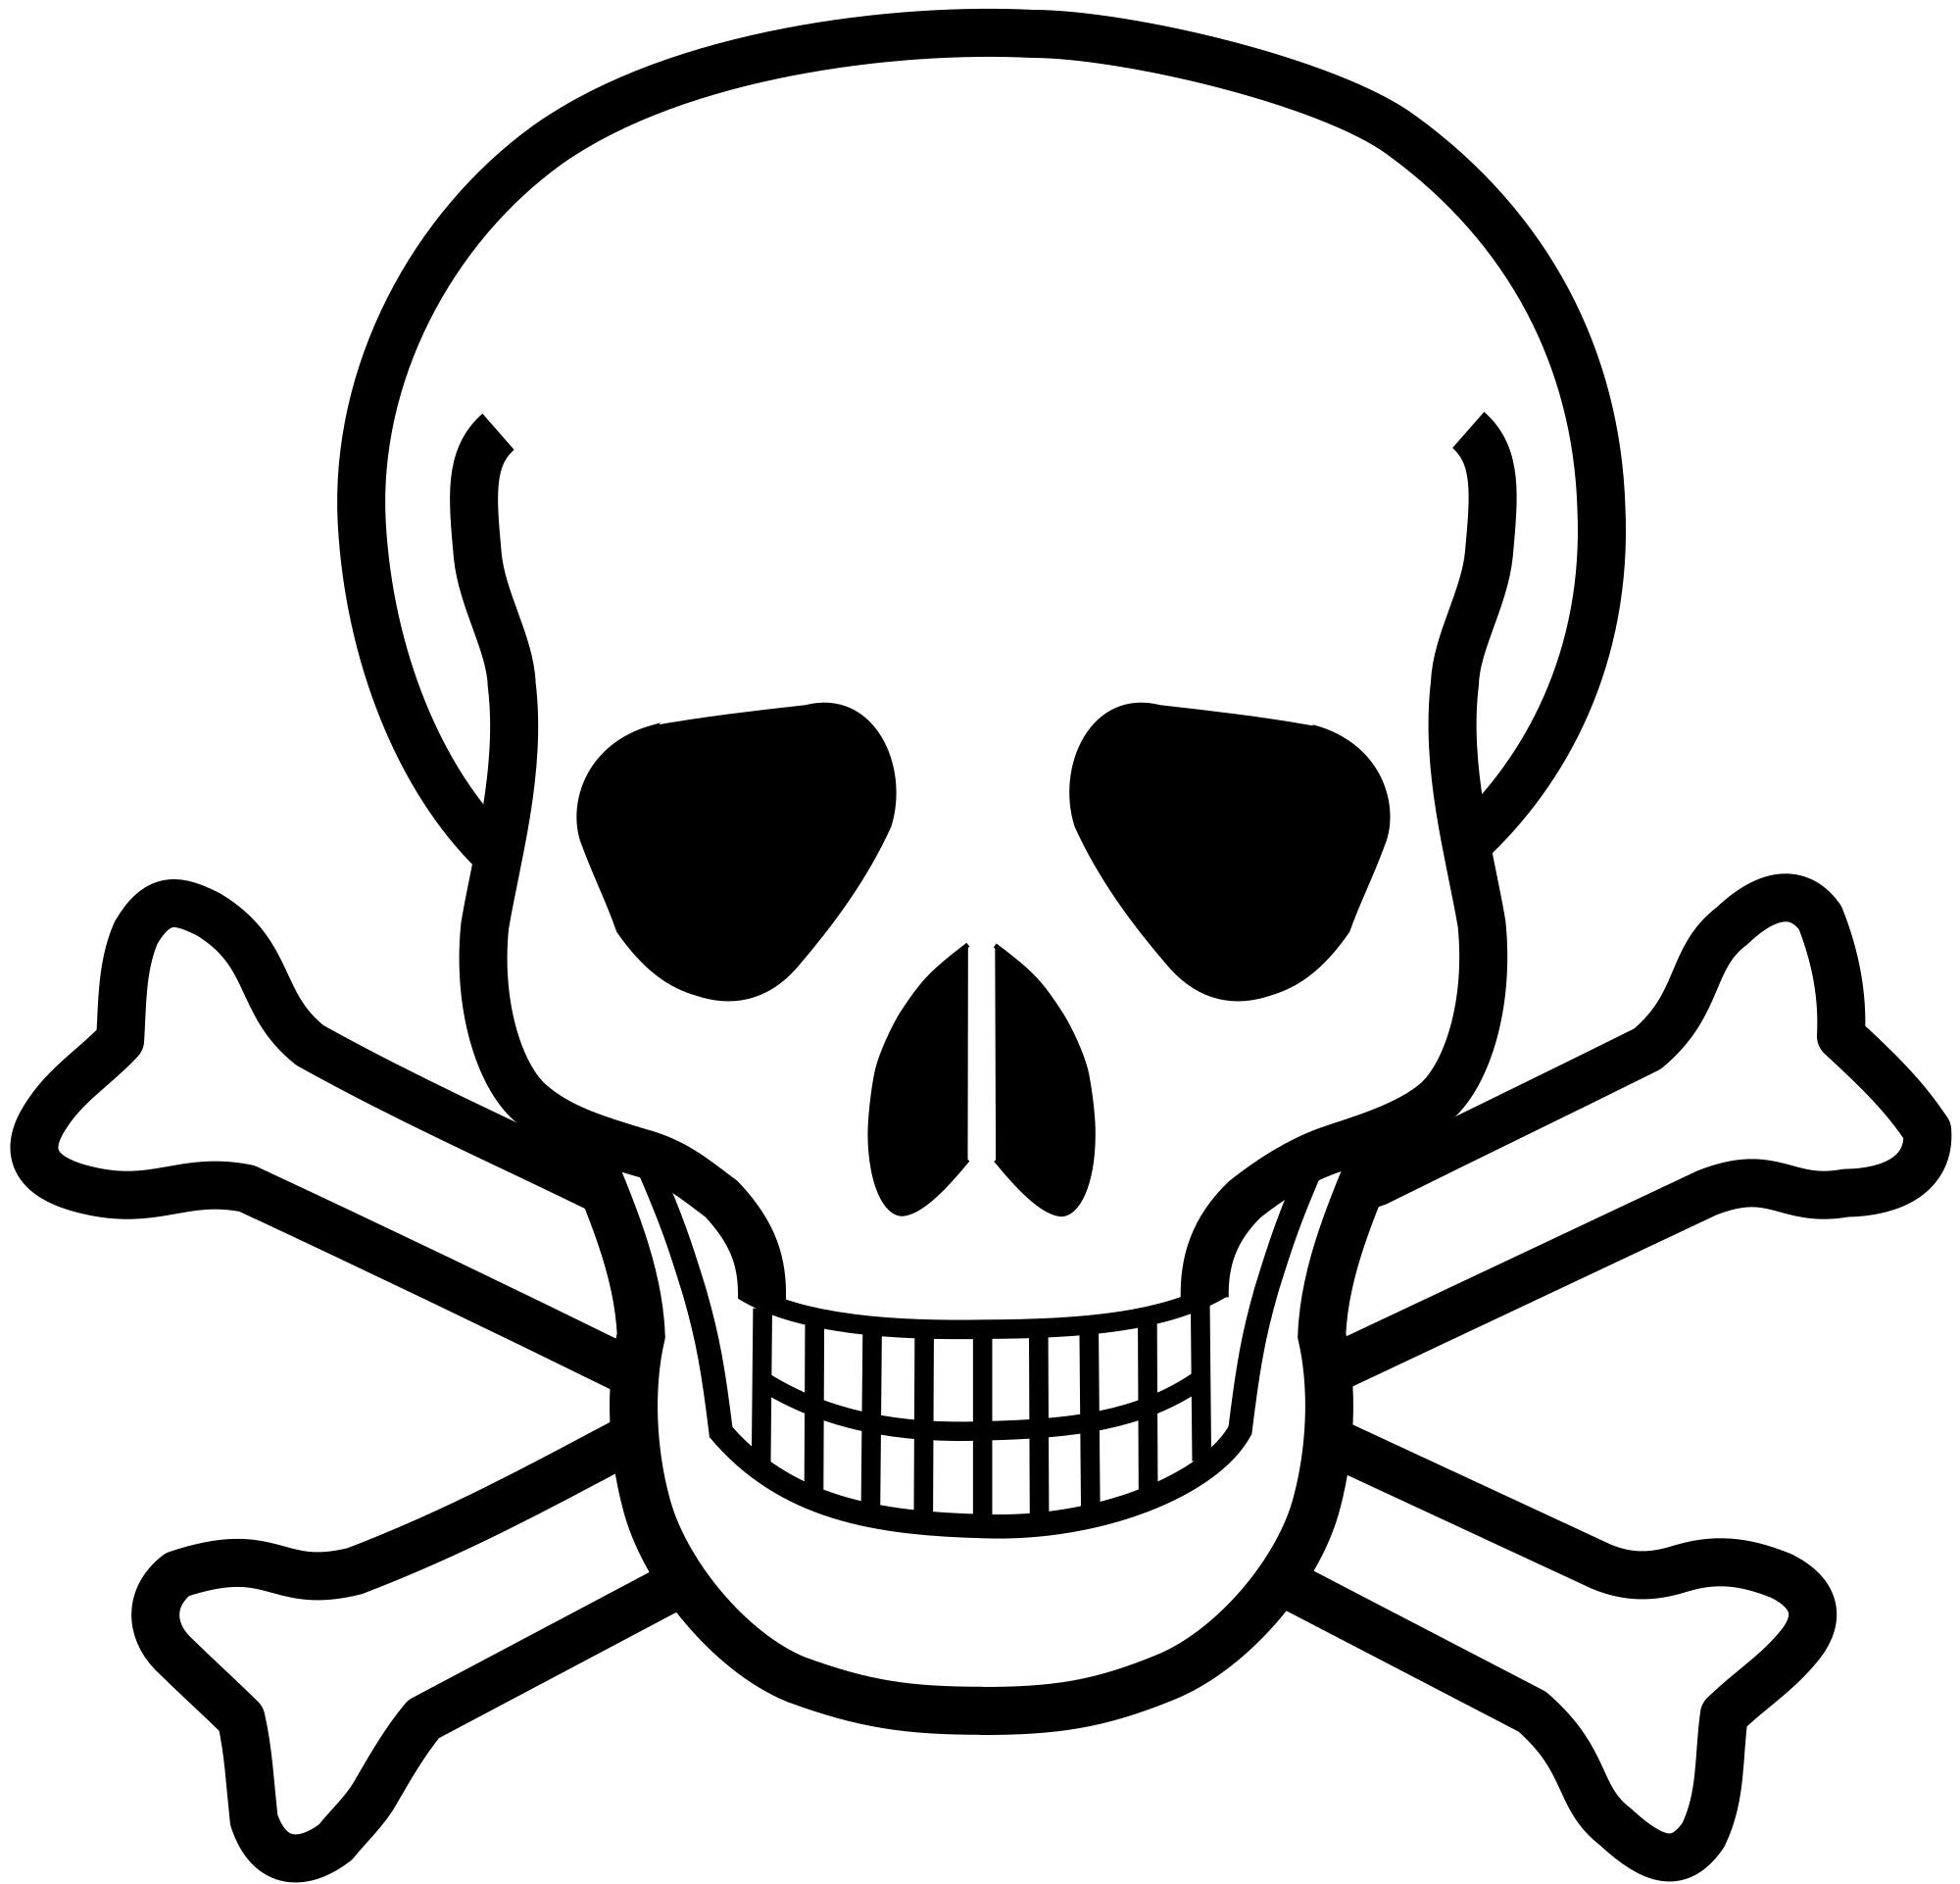 Skull player football clipart png download Skull And Crossbones Group (79+) png download